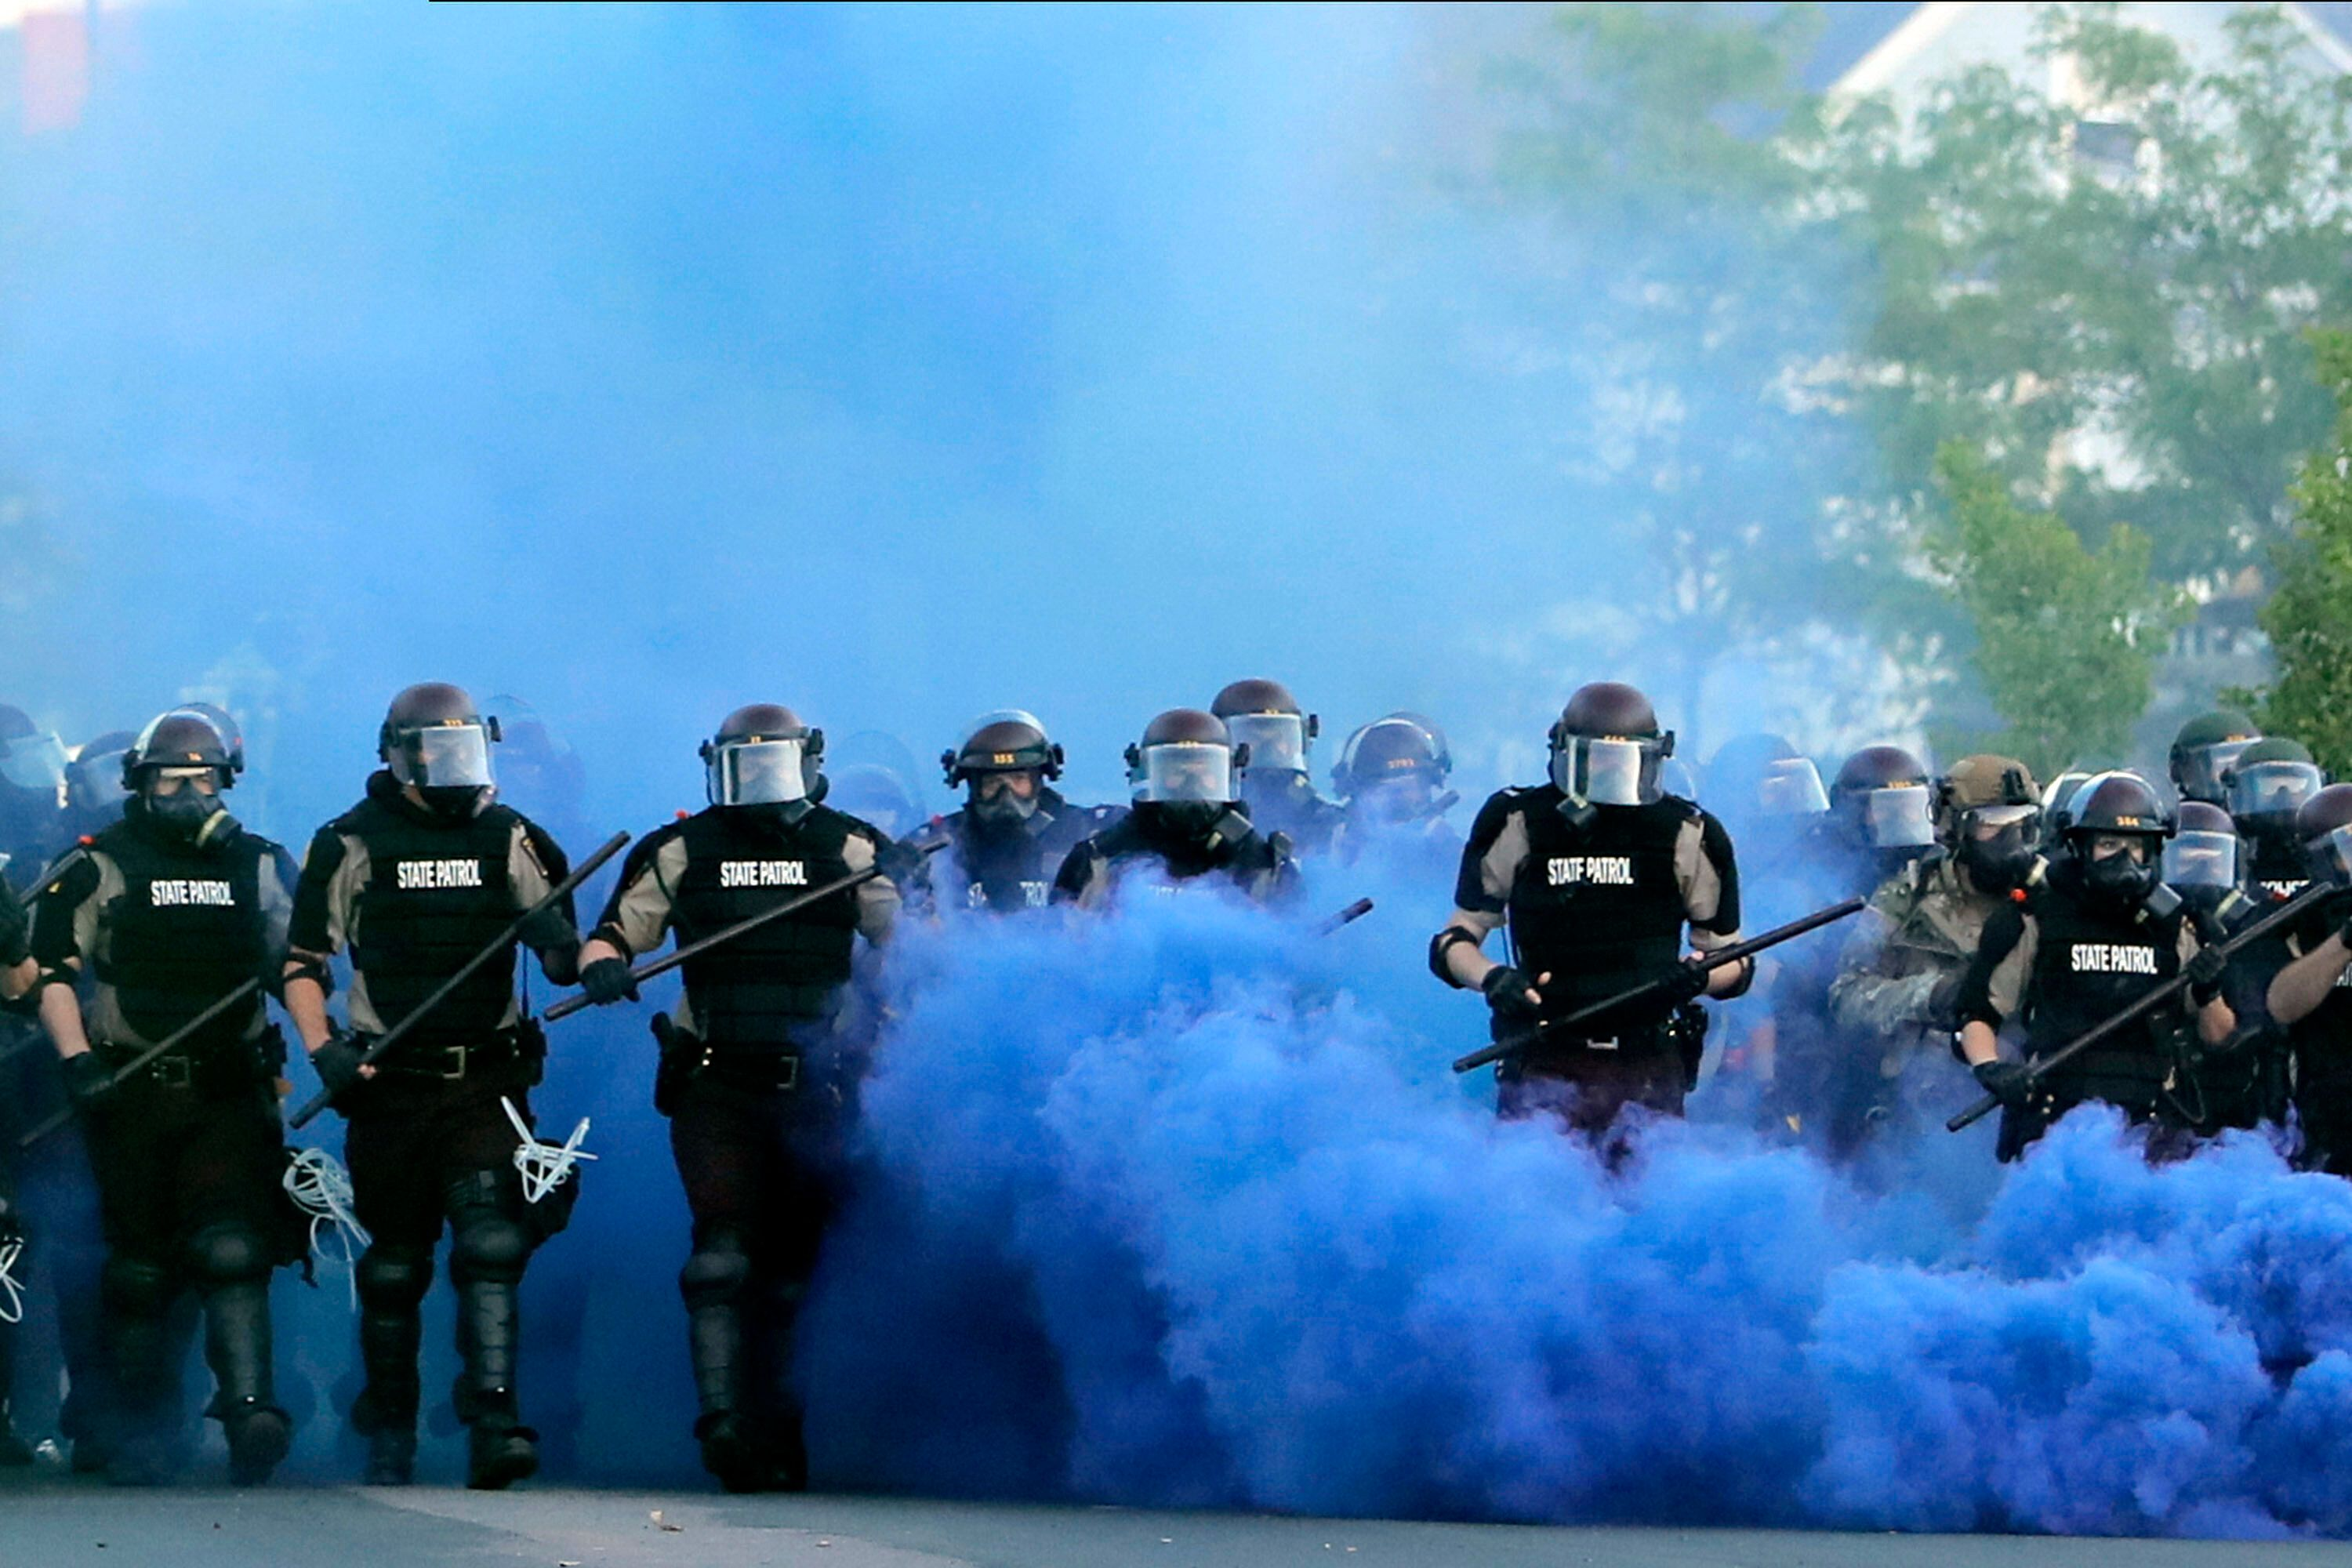 FILE - In this May 30, 2020, file photo, Minnesota State Police officers approach a crowd of protesters in Minneapolis. The M